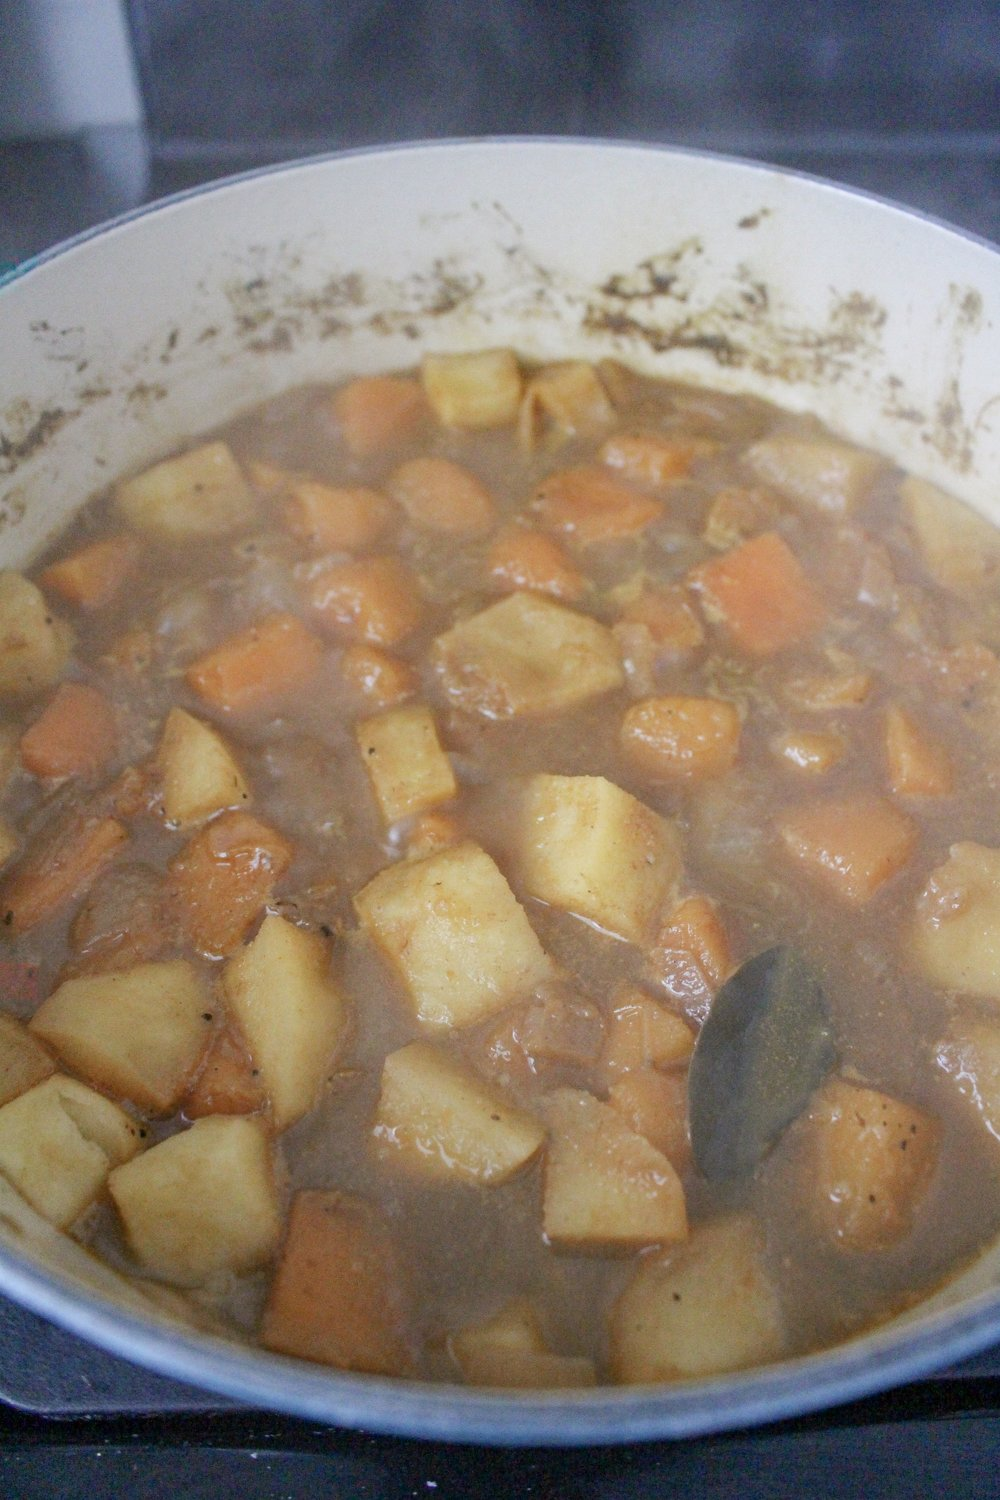 Butternut squash simmering for soup